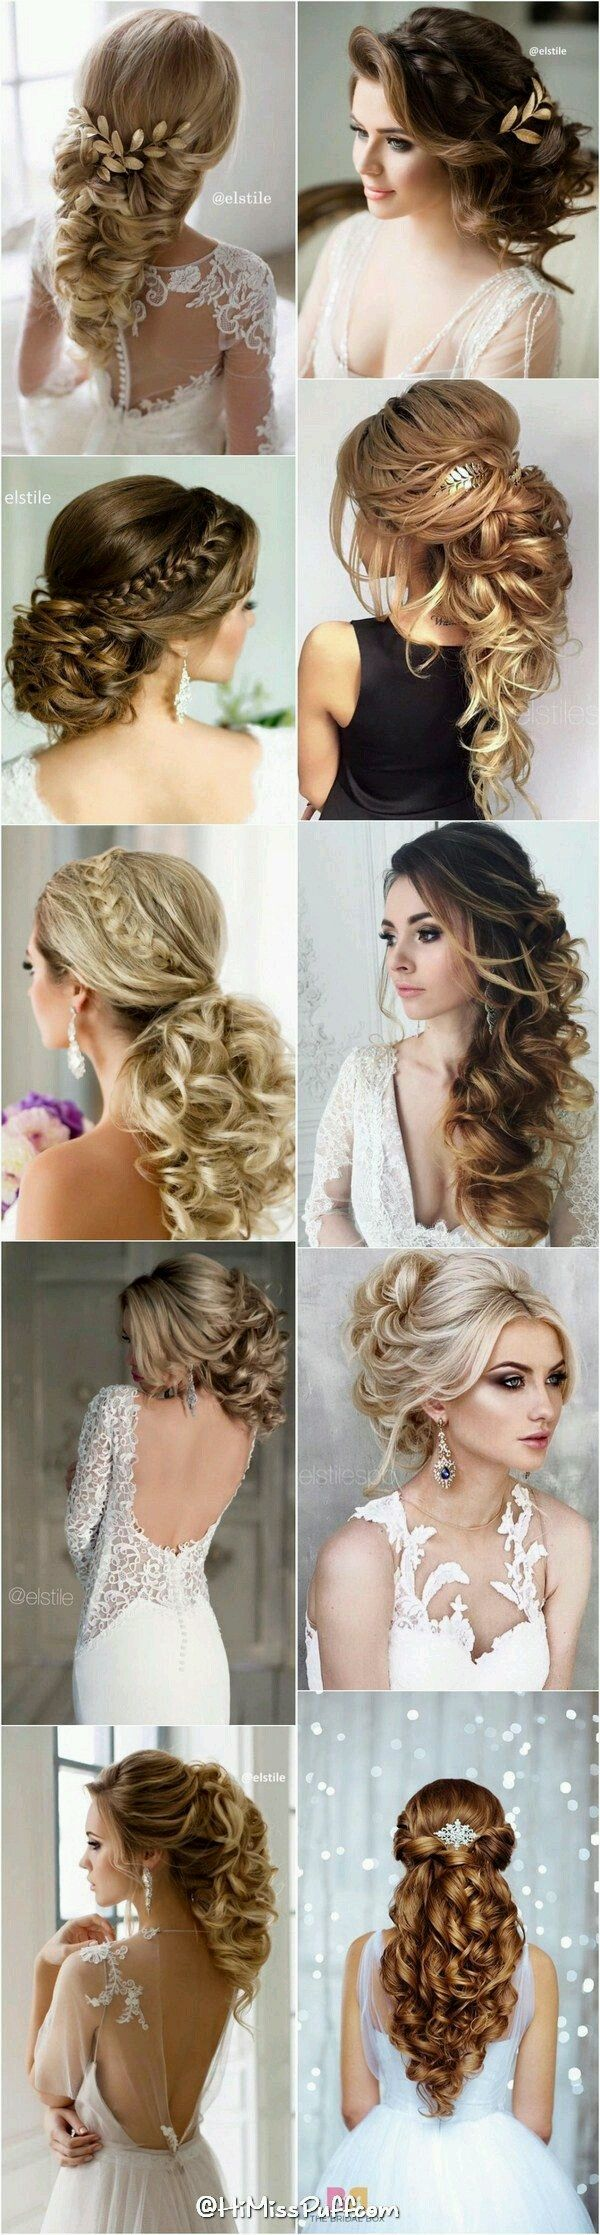 Arabic hair styles for wedding day